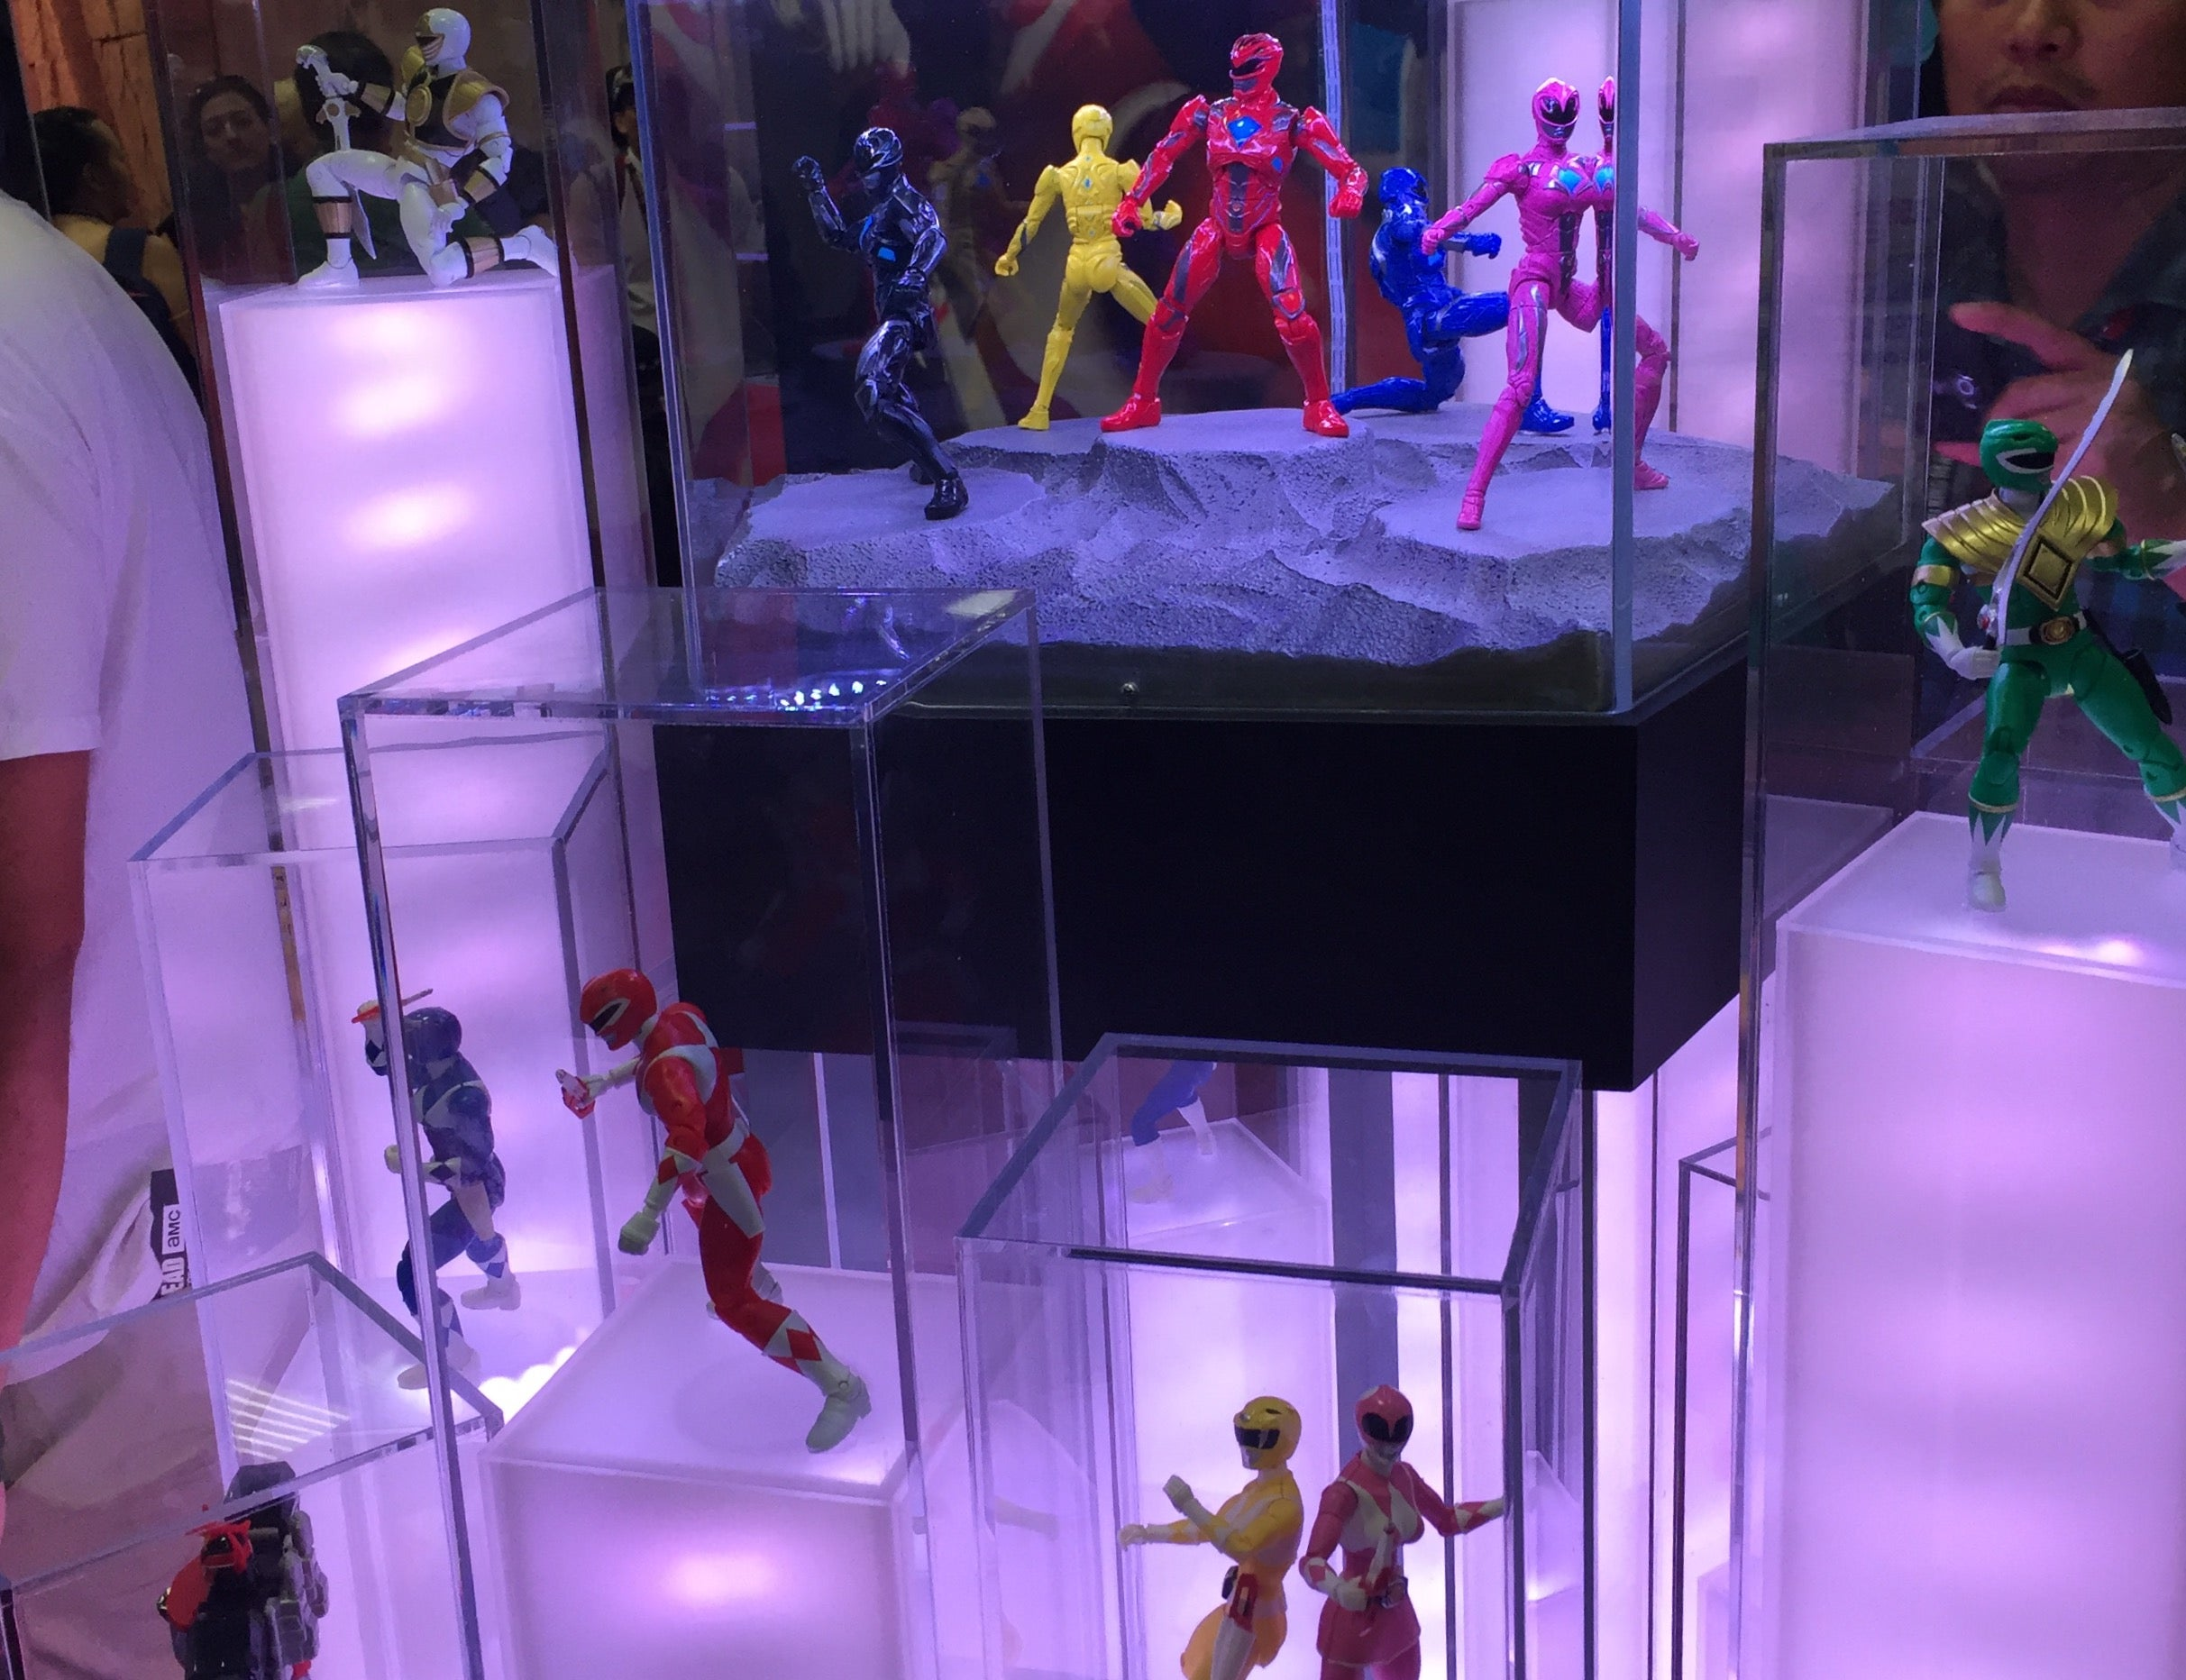 bandai america's power rangers figurines